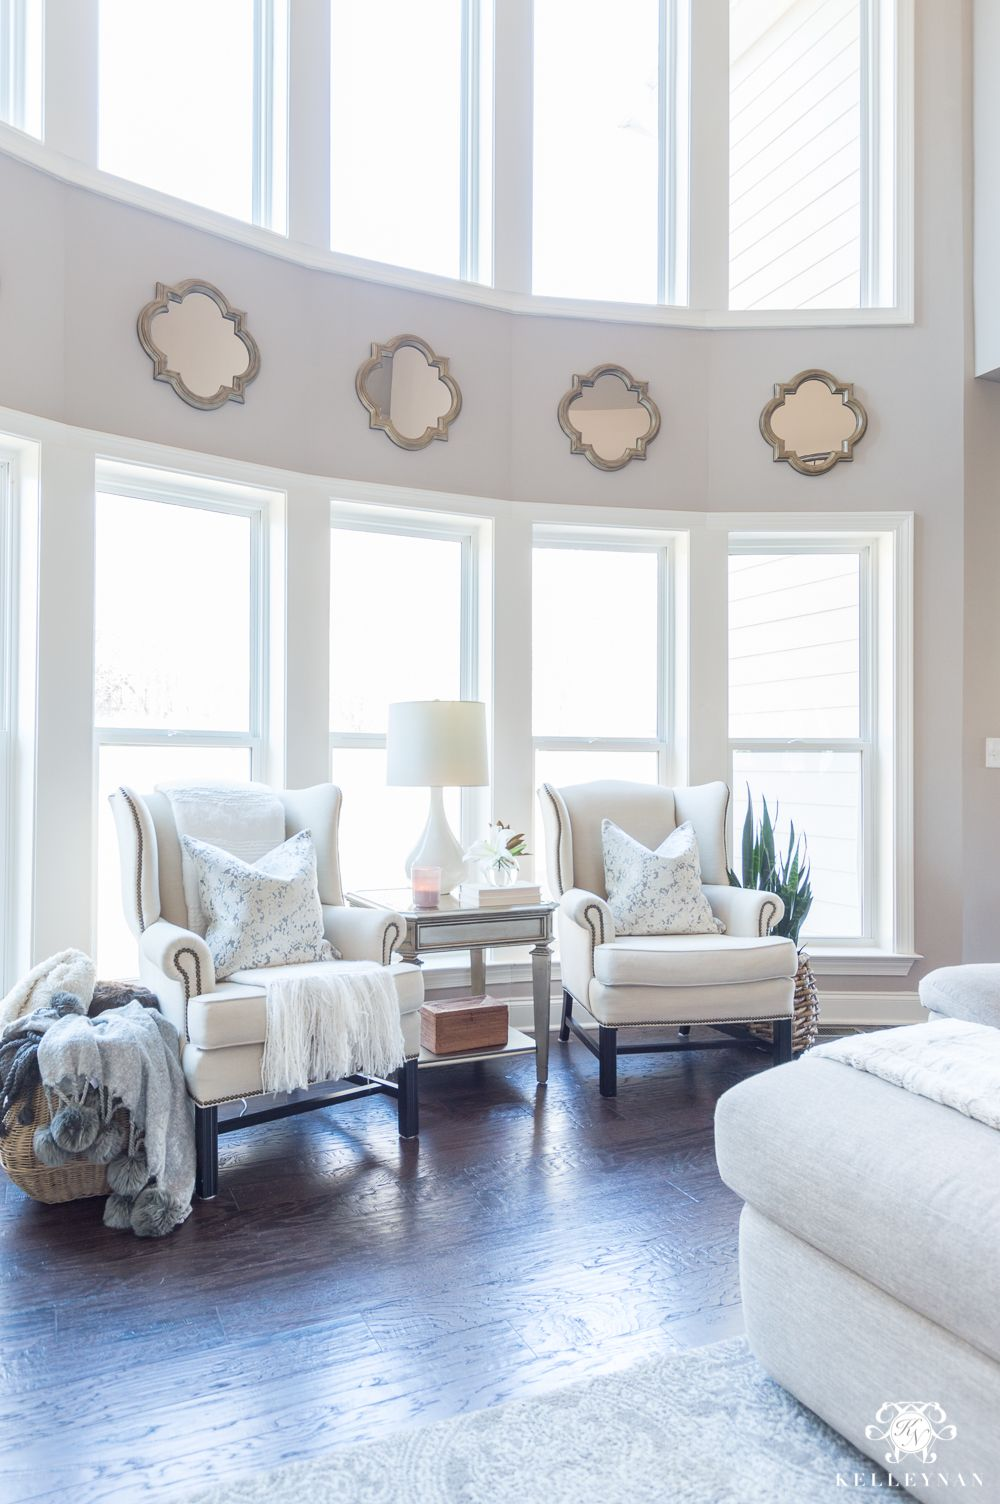 Living room furniture placement with sitting nook | Blogger Home ...